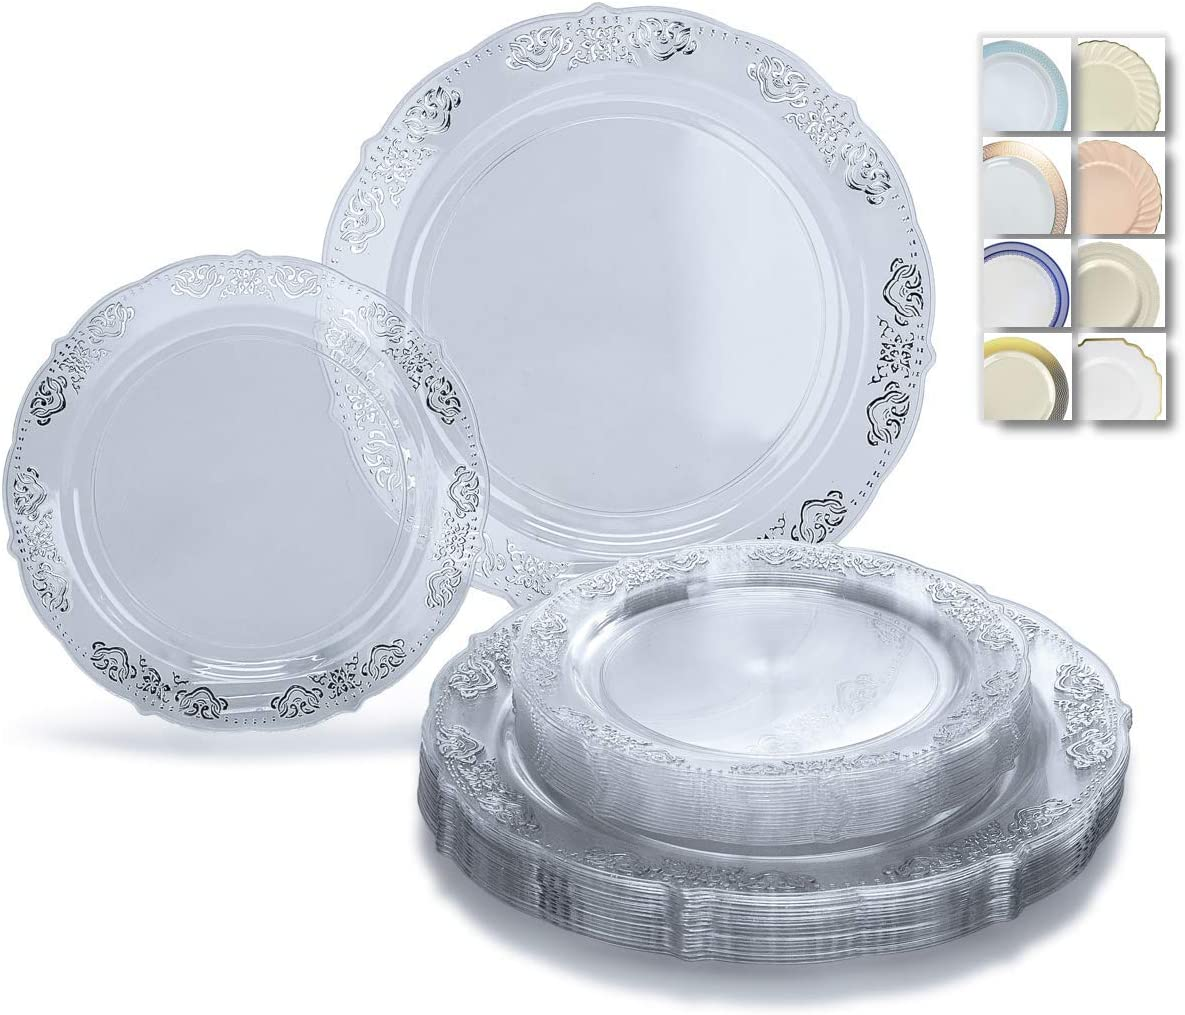 OCCASIONS 240 Plates Pack,(120 Guests) Vintage Wedding Party Disposable Plastic Plates Set -120 x 10.25'' Dinner + 120 x 7.5'' Salad/Dessert Plate (Portofino Clear/Silver) 712BiL-ghFaL